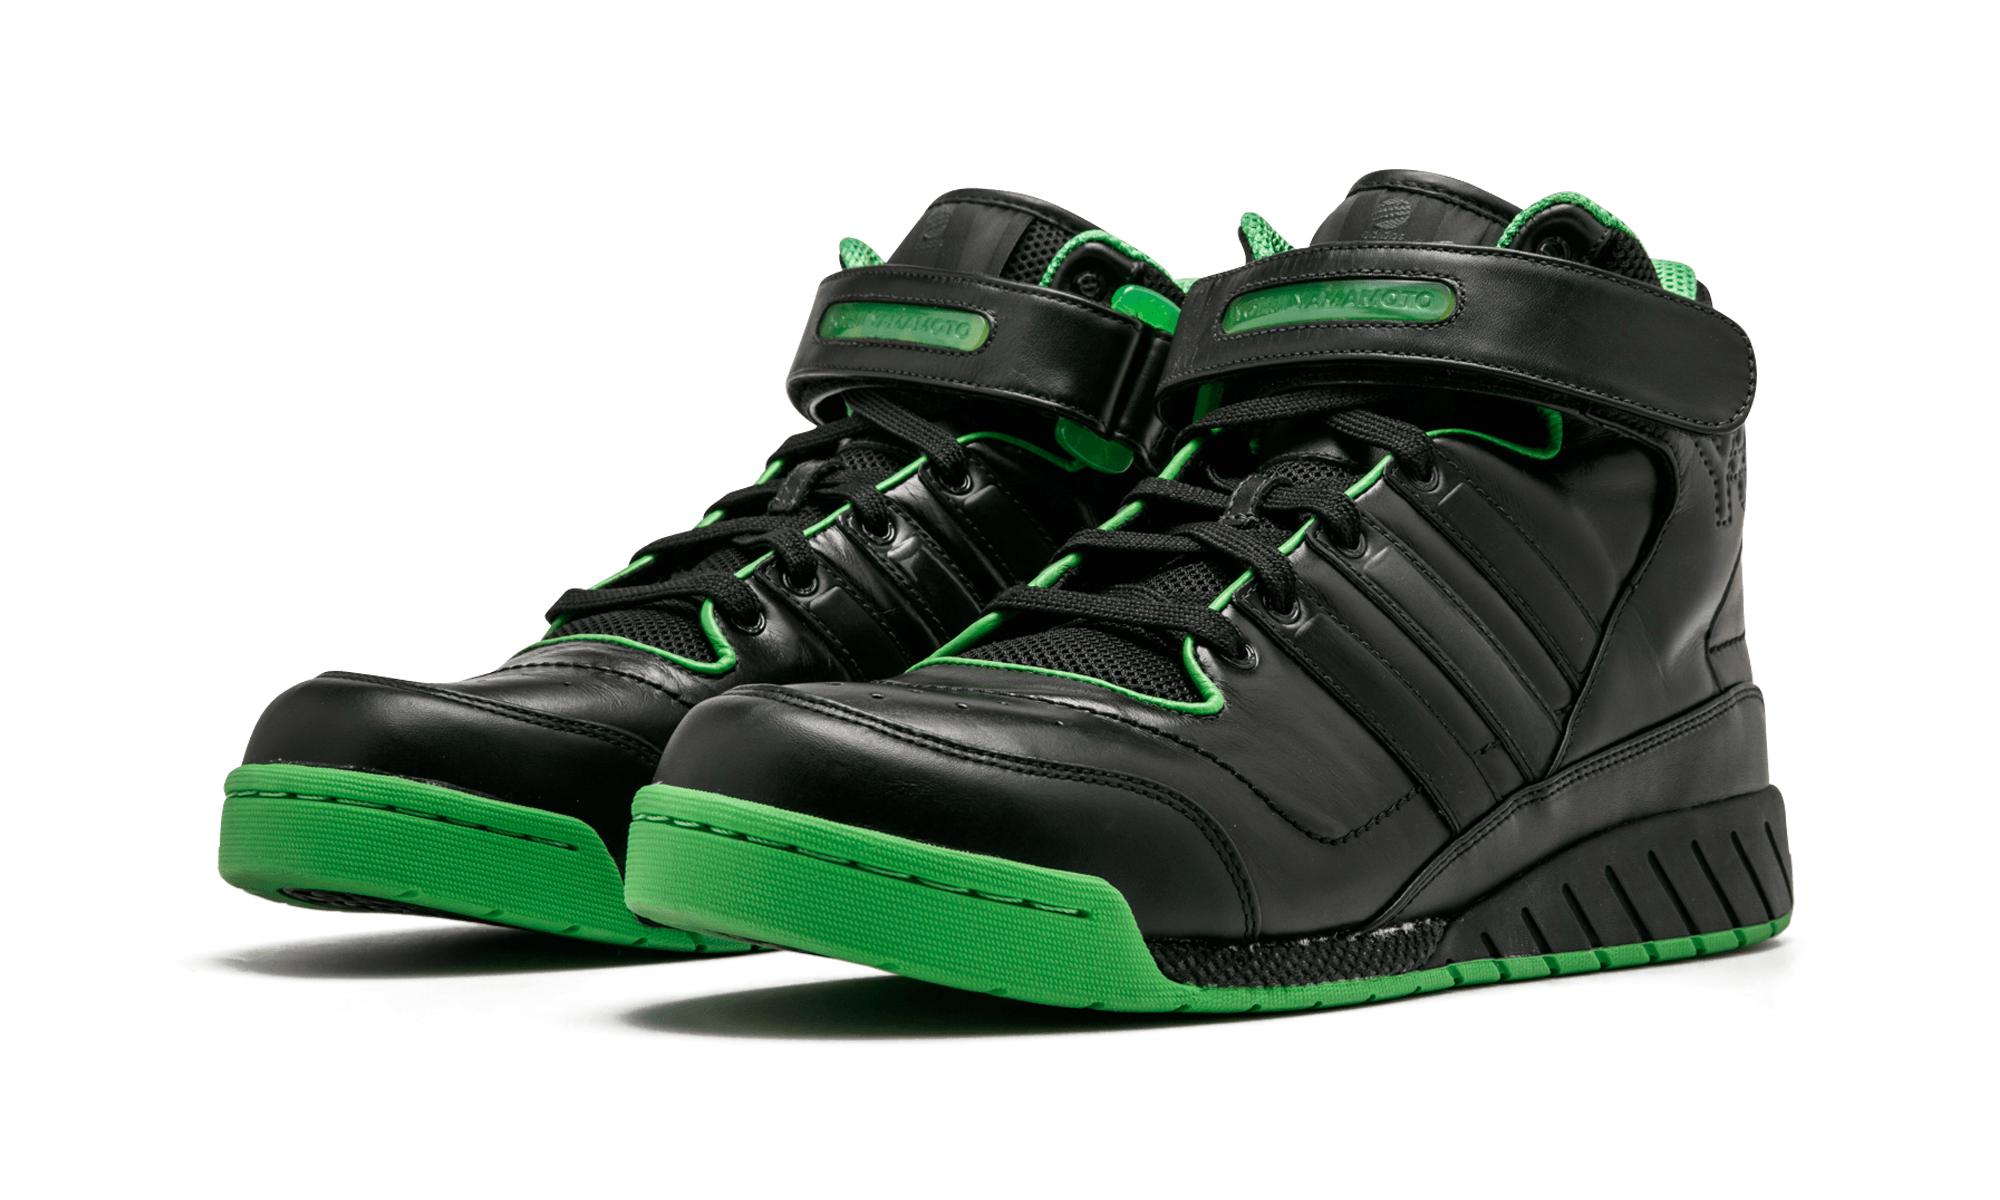 finest selection a0737 35bf2 Adidas - Black Y-3 Bball Mid for Men - Lyst. View fullscreen